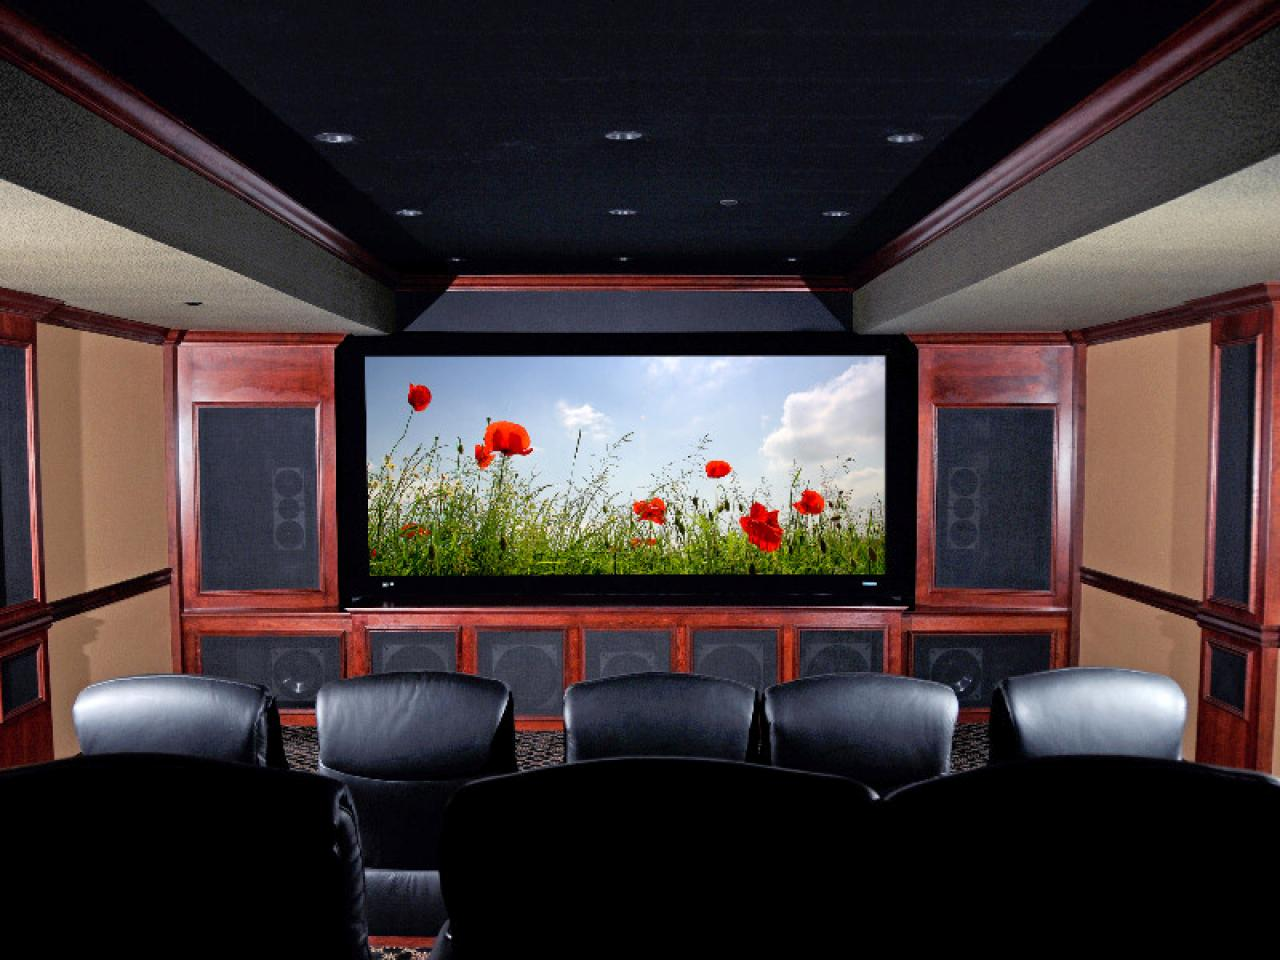 Building a home theater pictures options tips ideas hgtv Home cinema interior design ideas